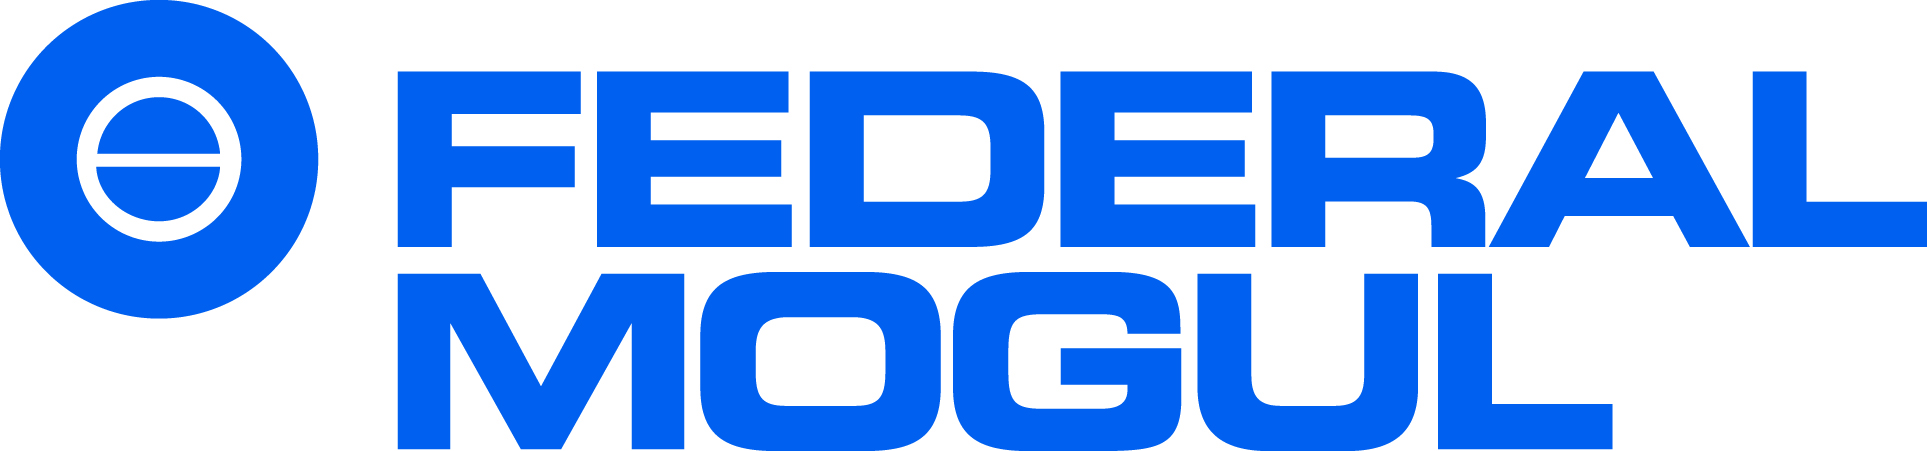 GARAGE VINSON - logo Federal Mogul